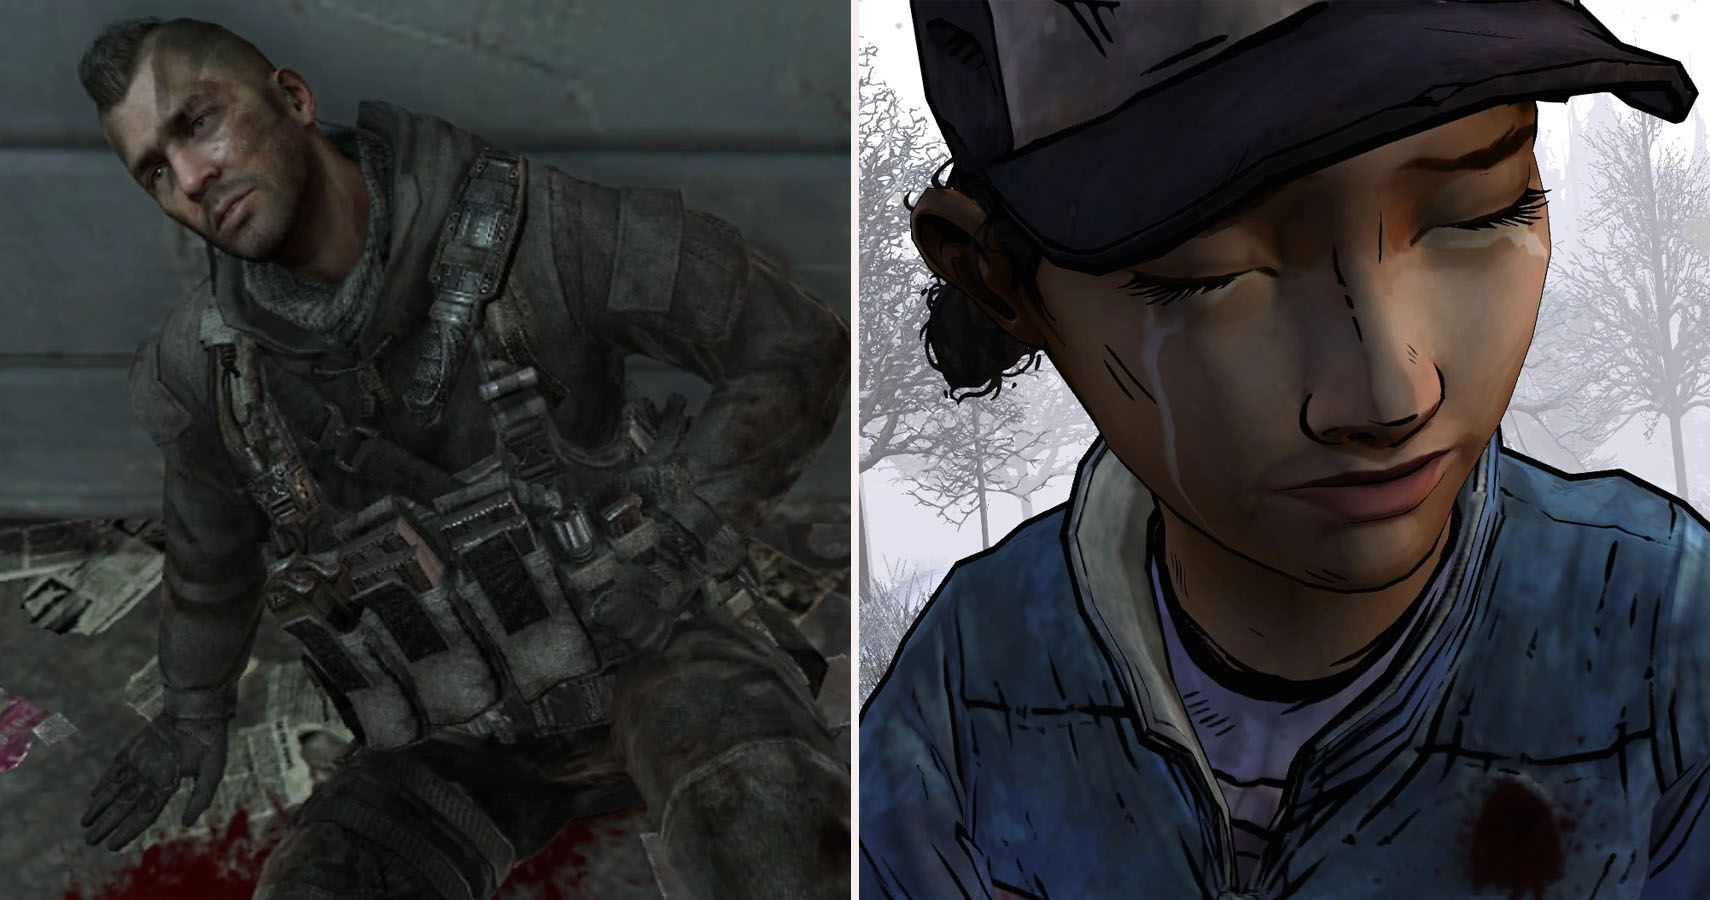 Gruesome: Violent Scenes In Games That Are Hard to Watch